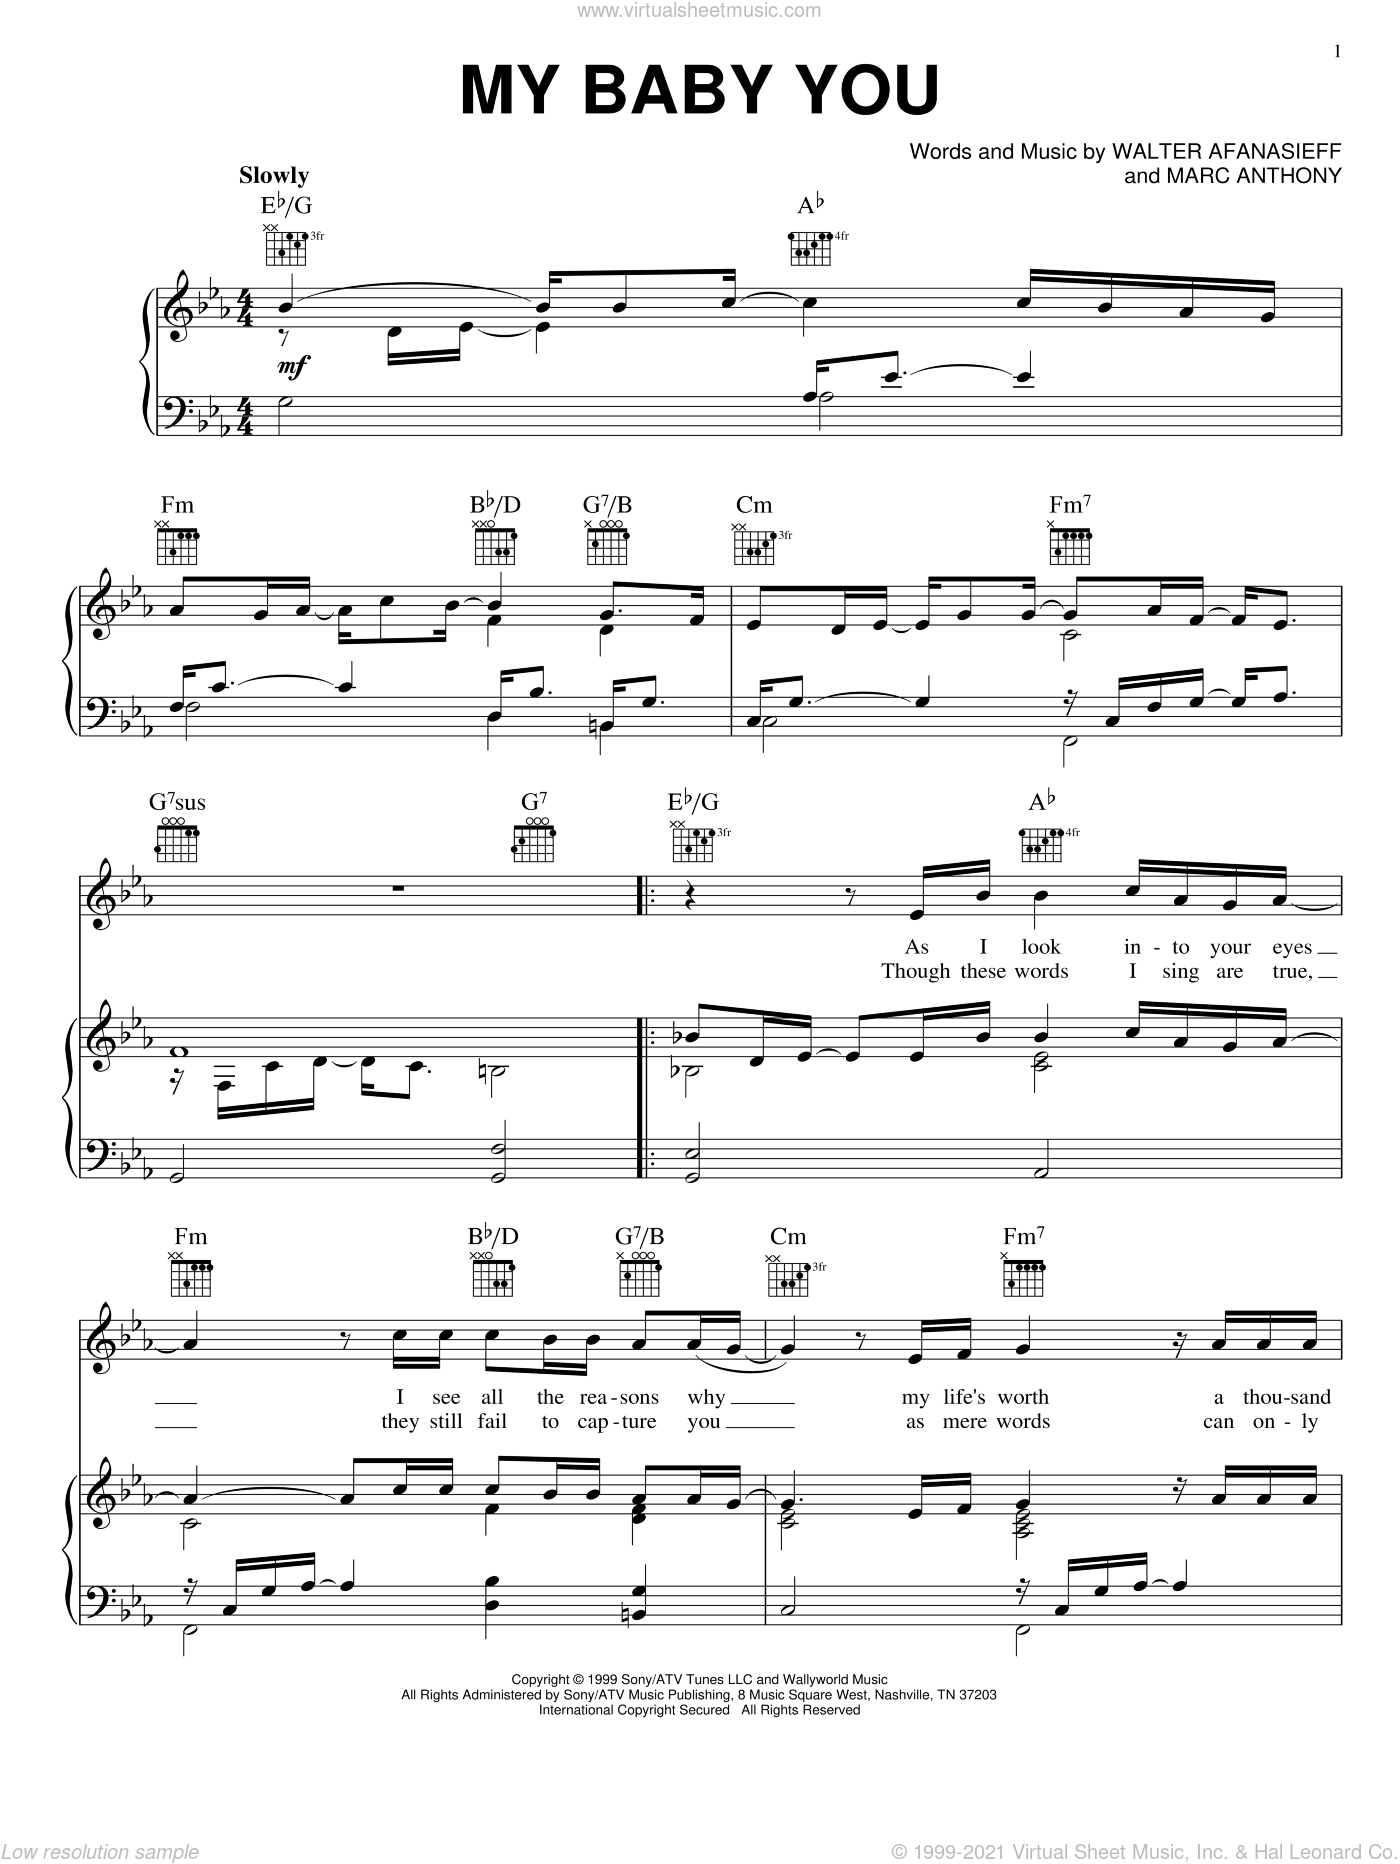 My Baby You sheet music for voice, piano or guitar by Walter Afanasieff and Marc Anthony. Score Image Preview.